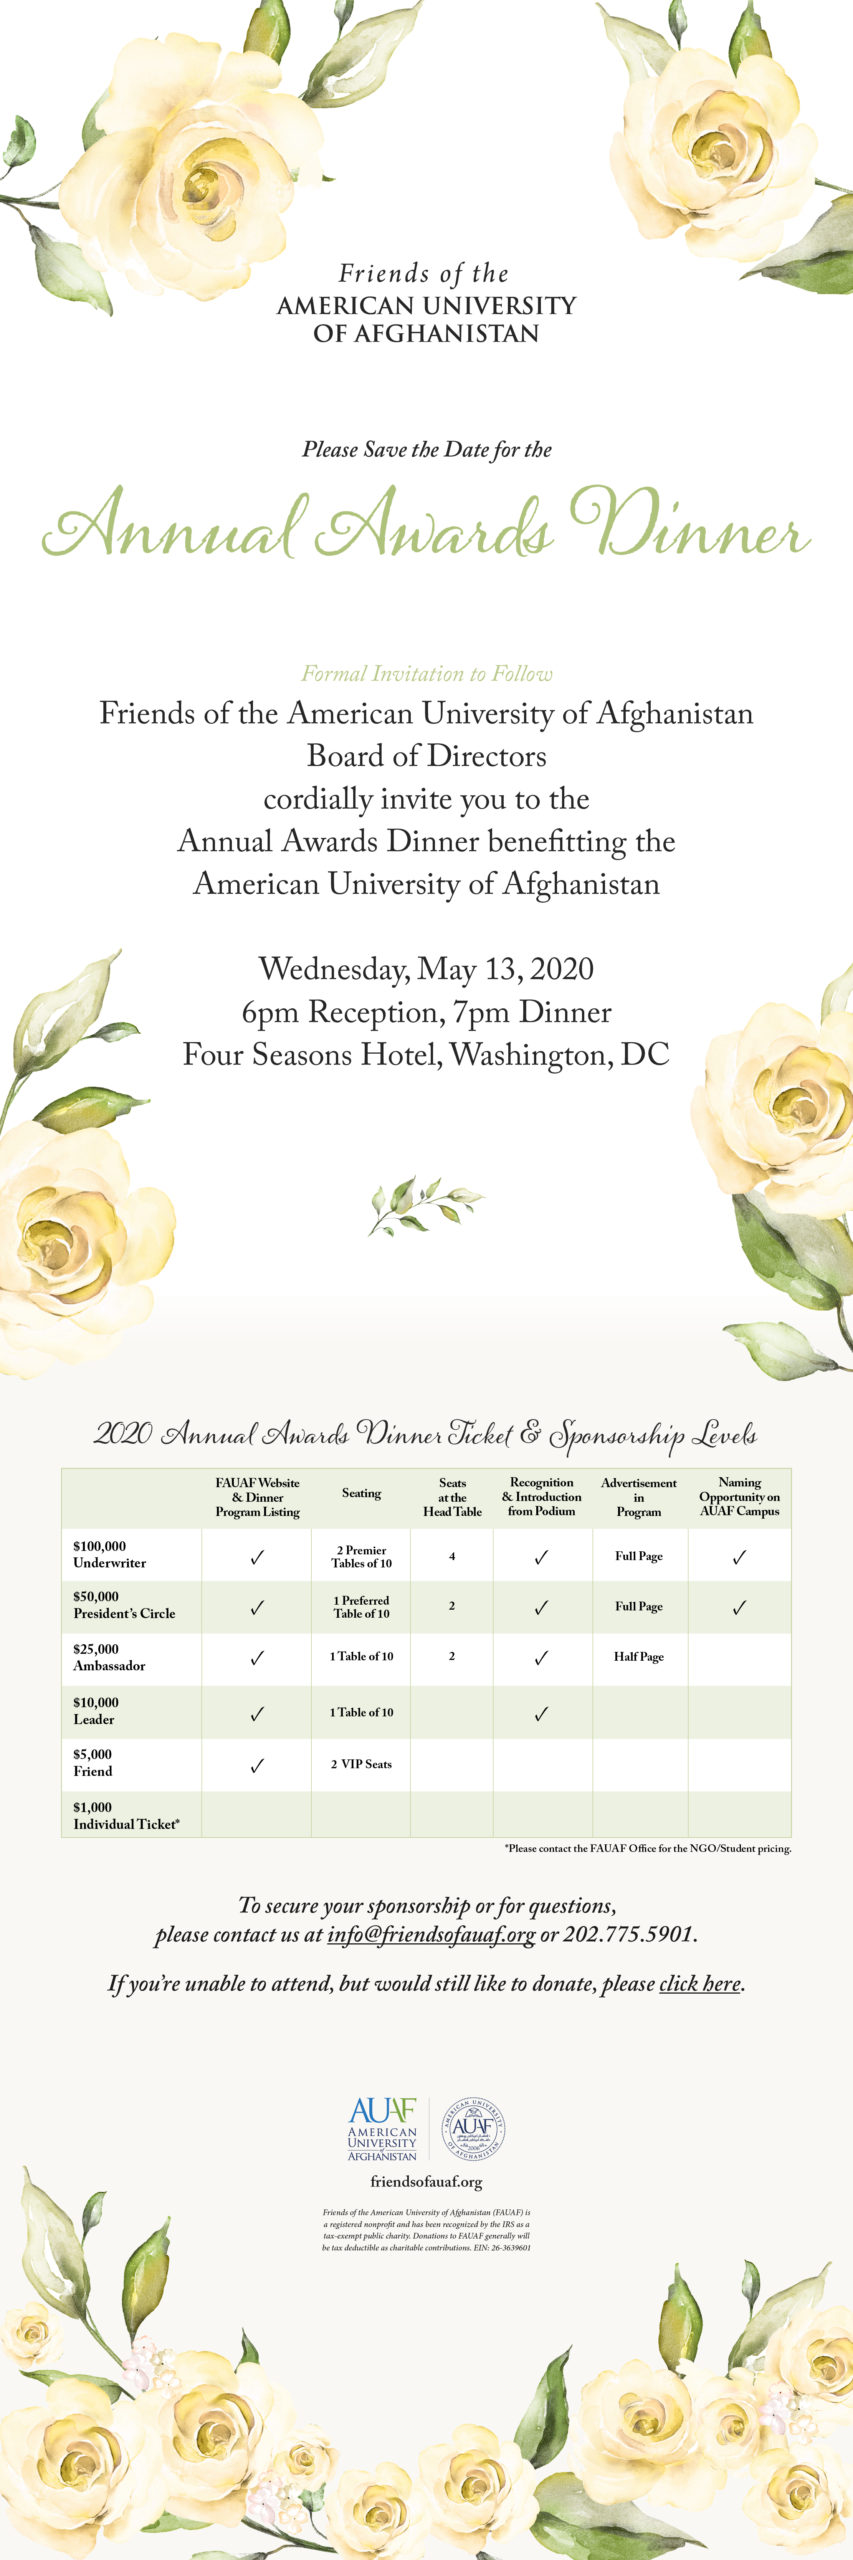 Save the Date for the Annual Awards Dinner on Wednesday, May 13, 2020 at the Four Seasons Hotel, Washington, DC.